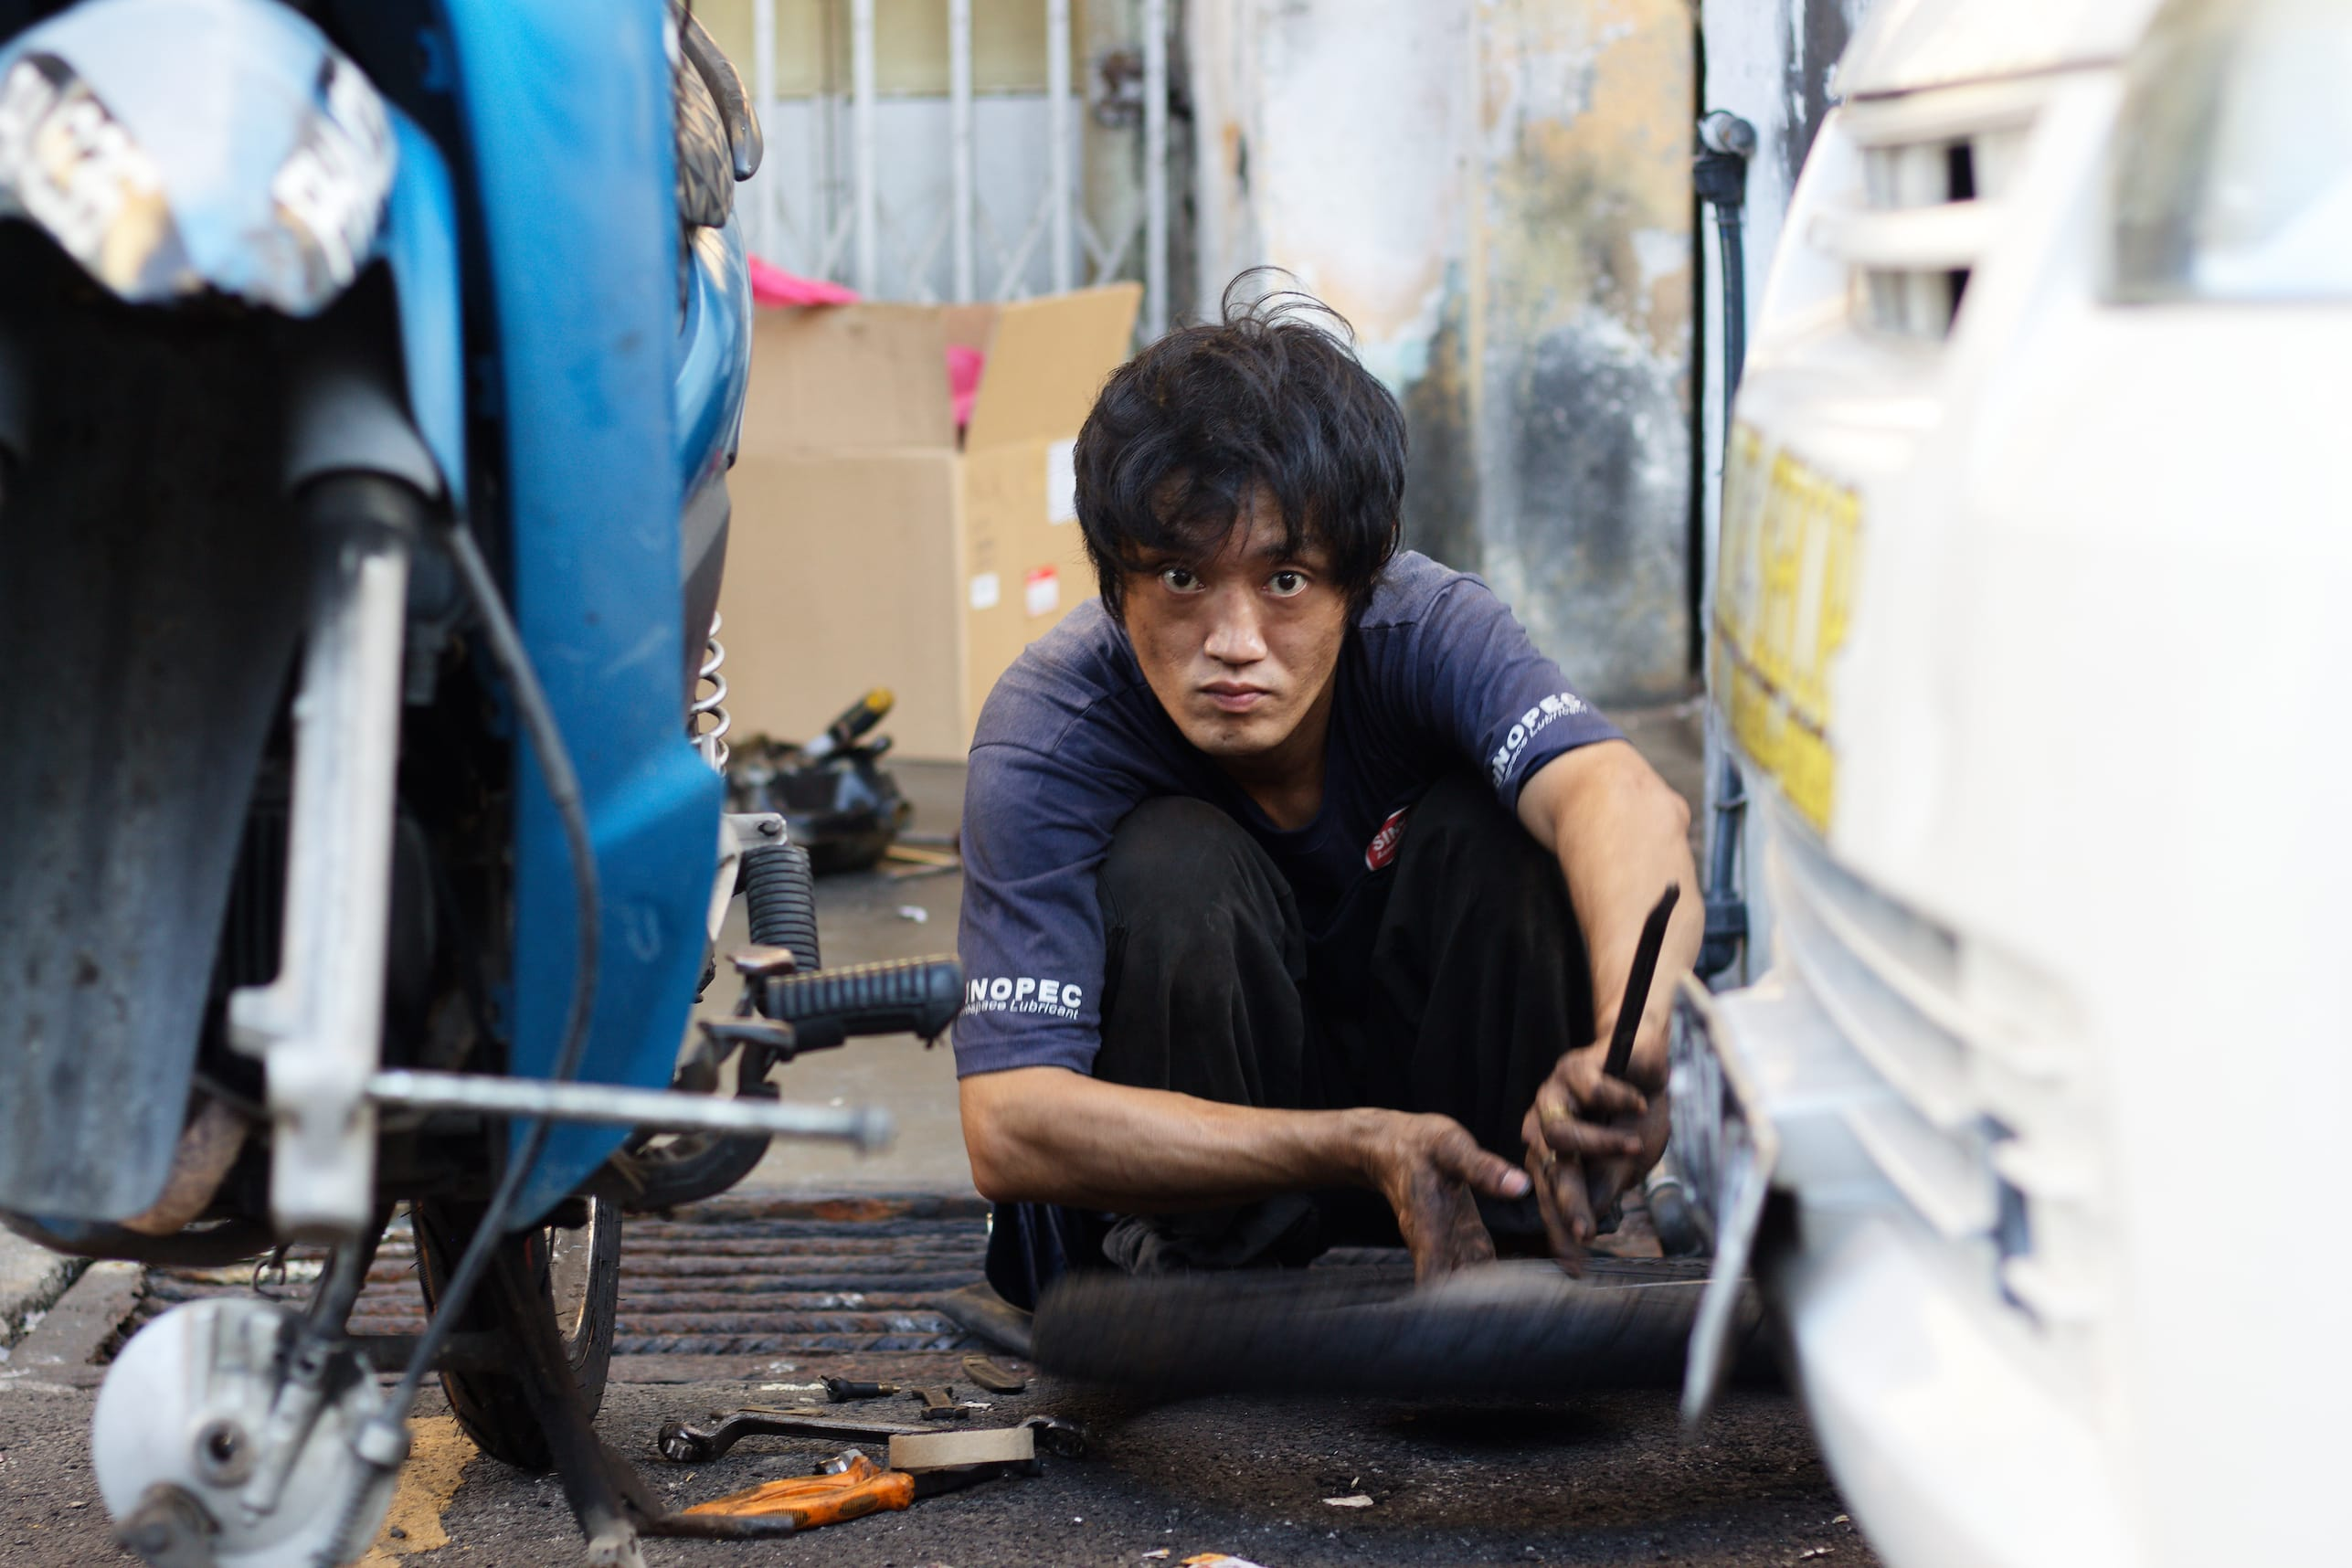 A Mechanic in a street of George Town Malaysia